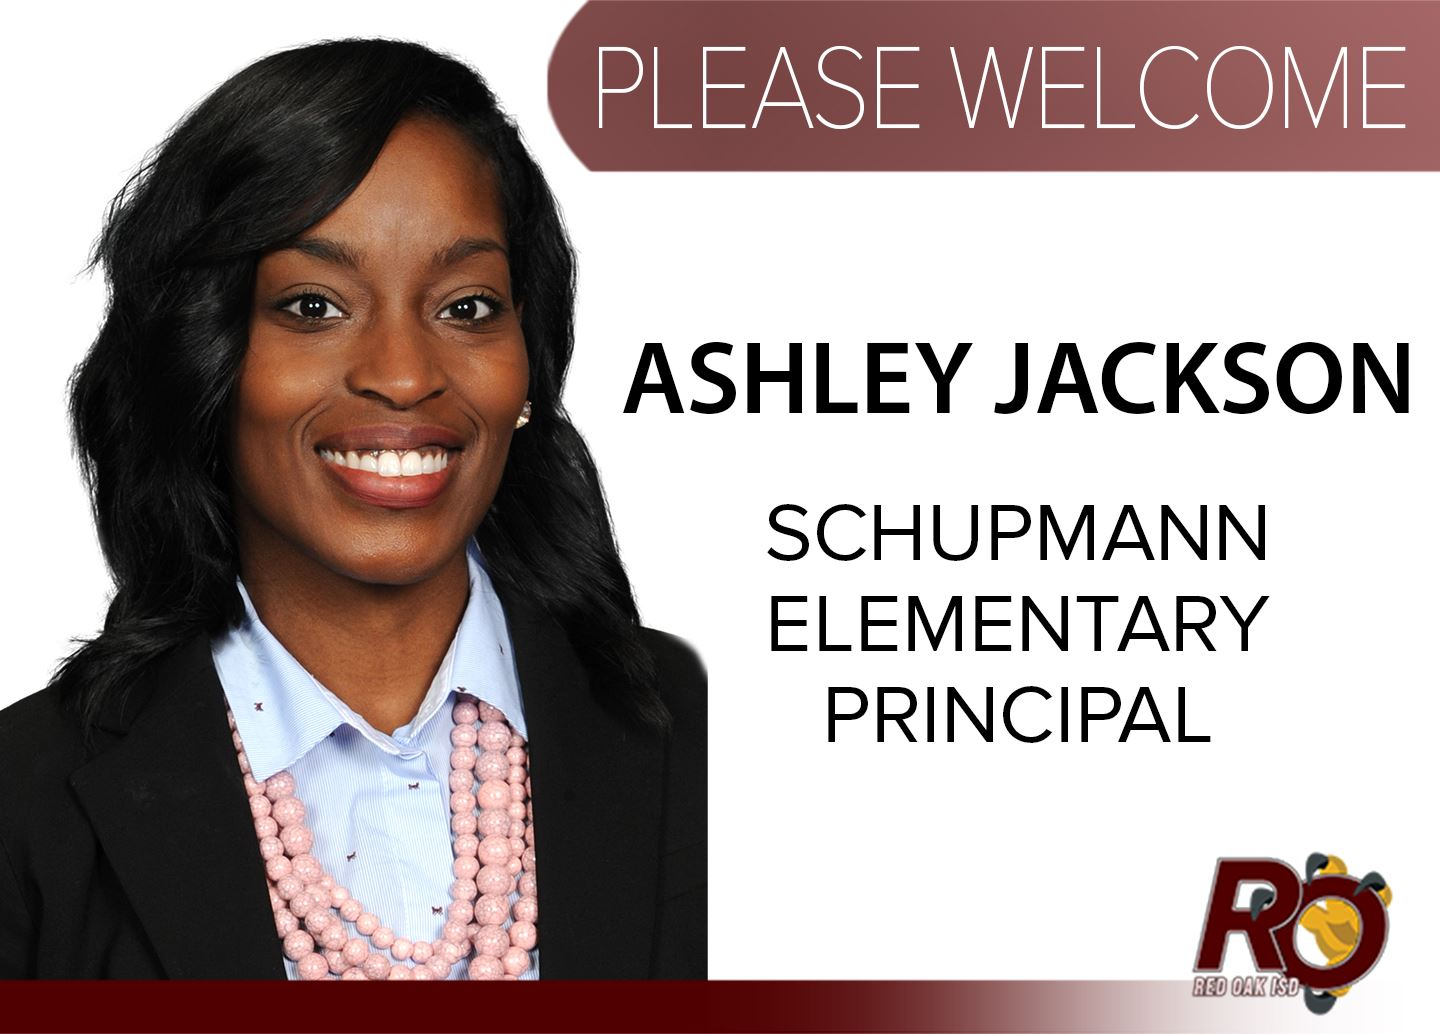 Please welcome Ashley Jackson, new principal for Schupmann Elementary